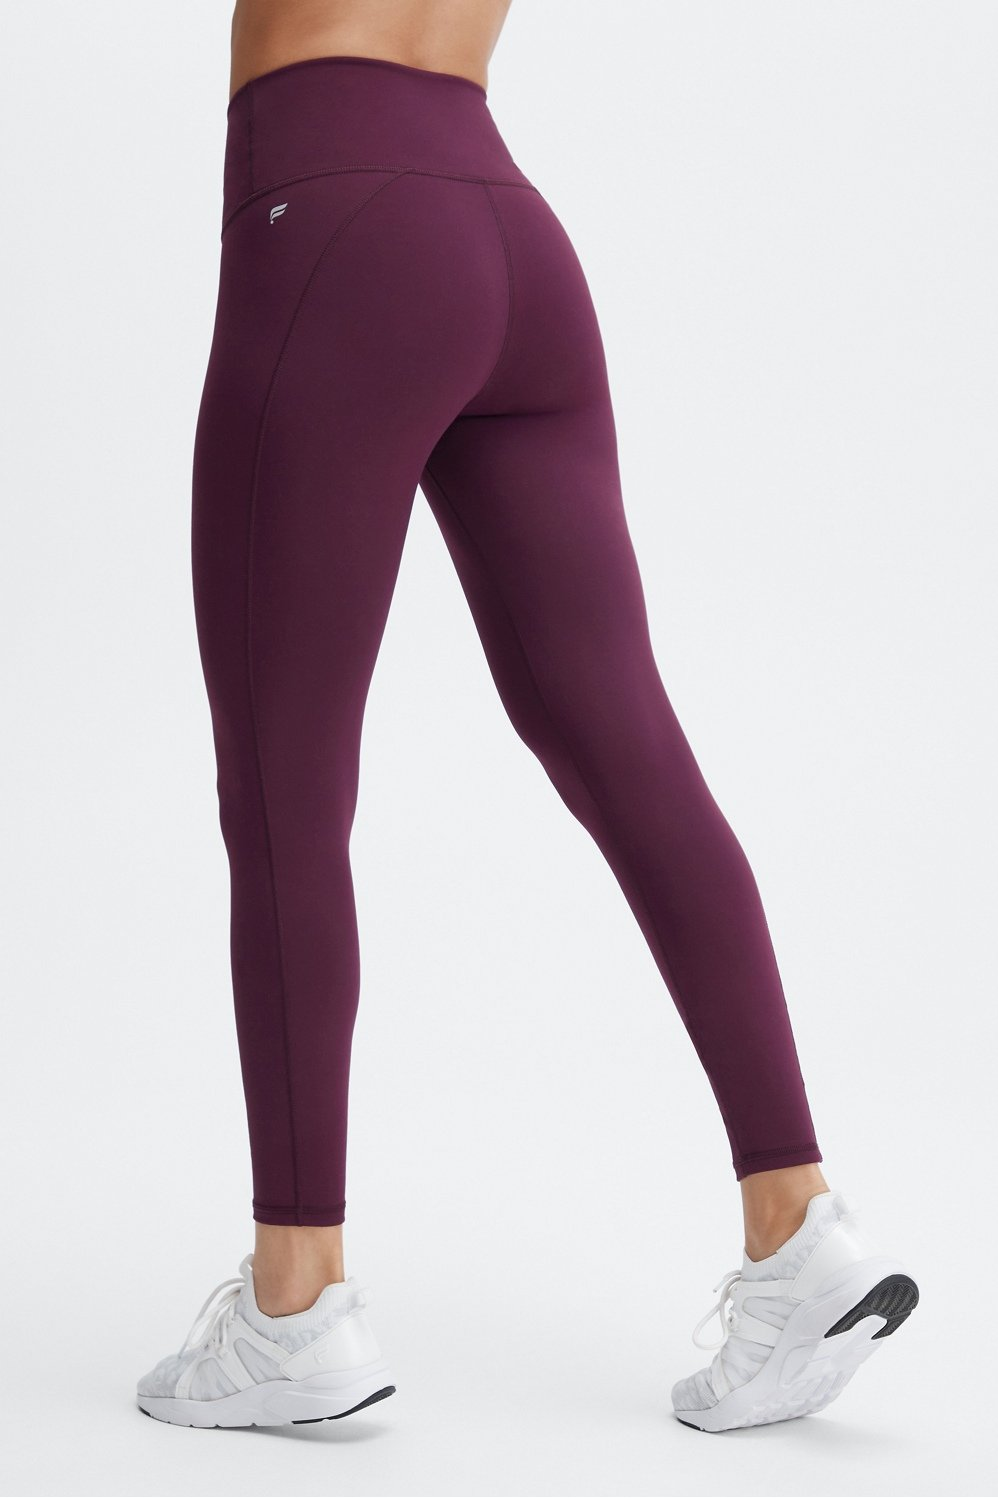 best leggings for working out